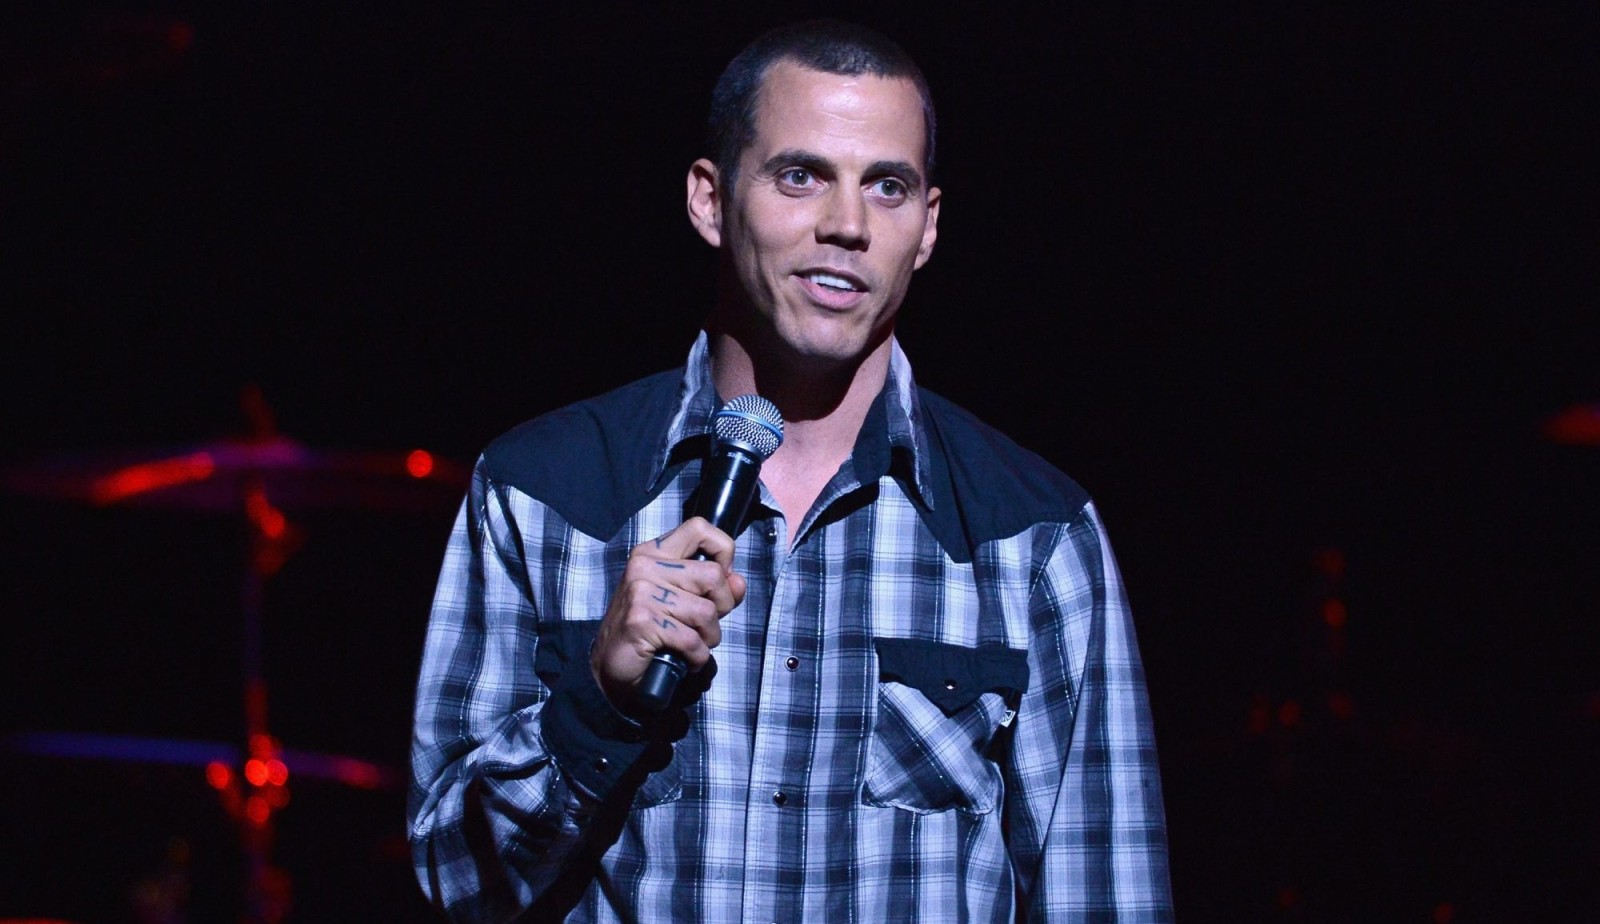 Steve-O will be at Helium Comedy Club for five shows. (Getty Images)